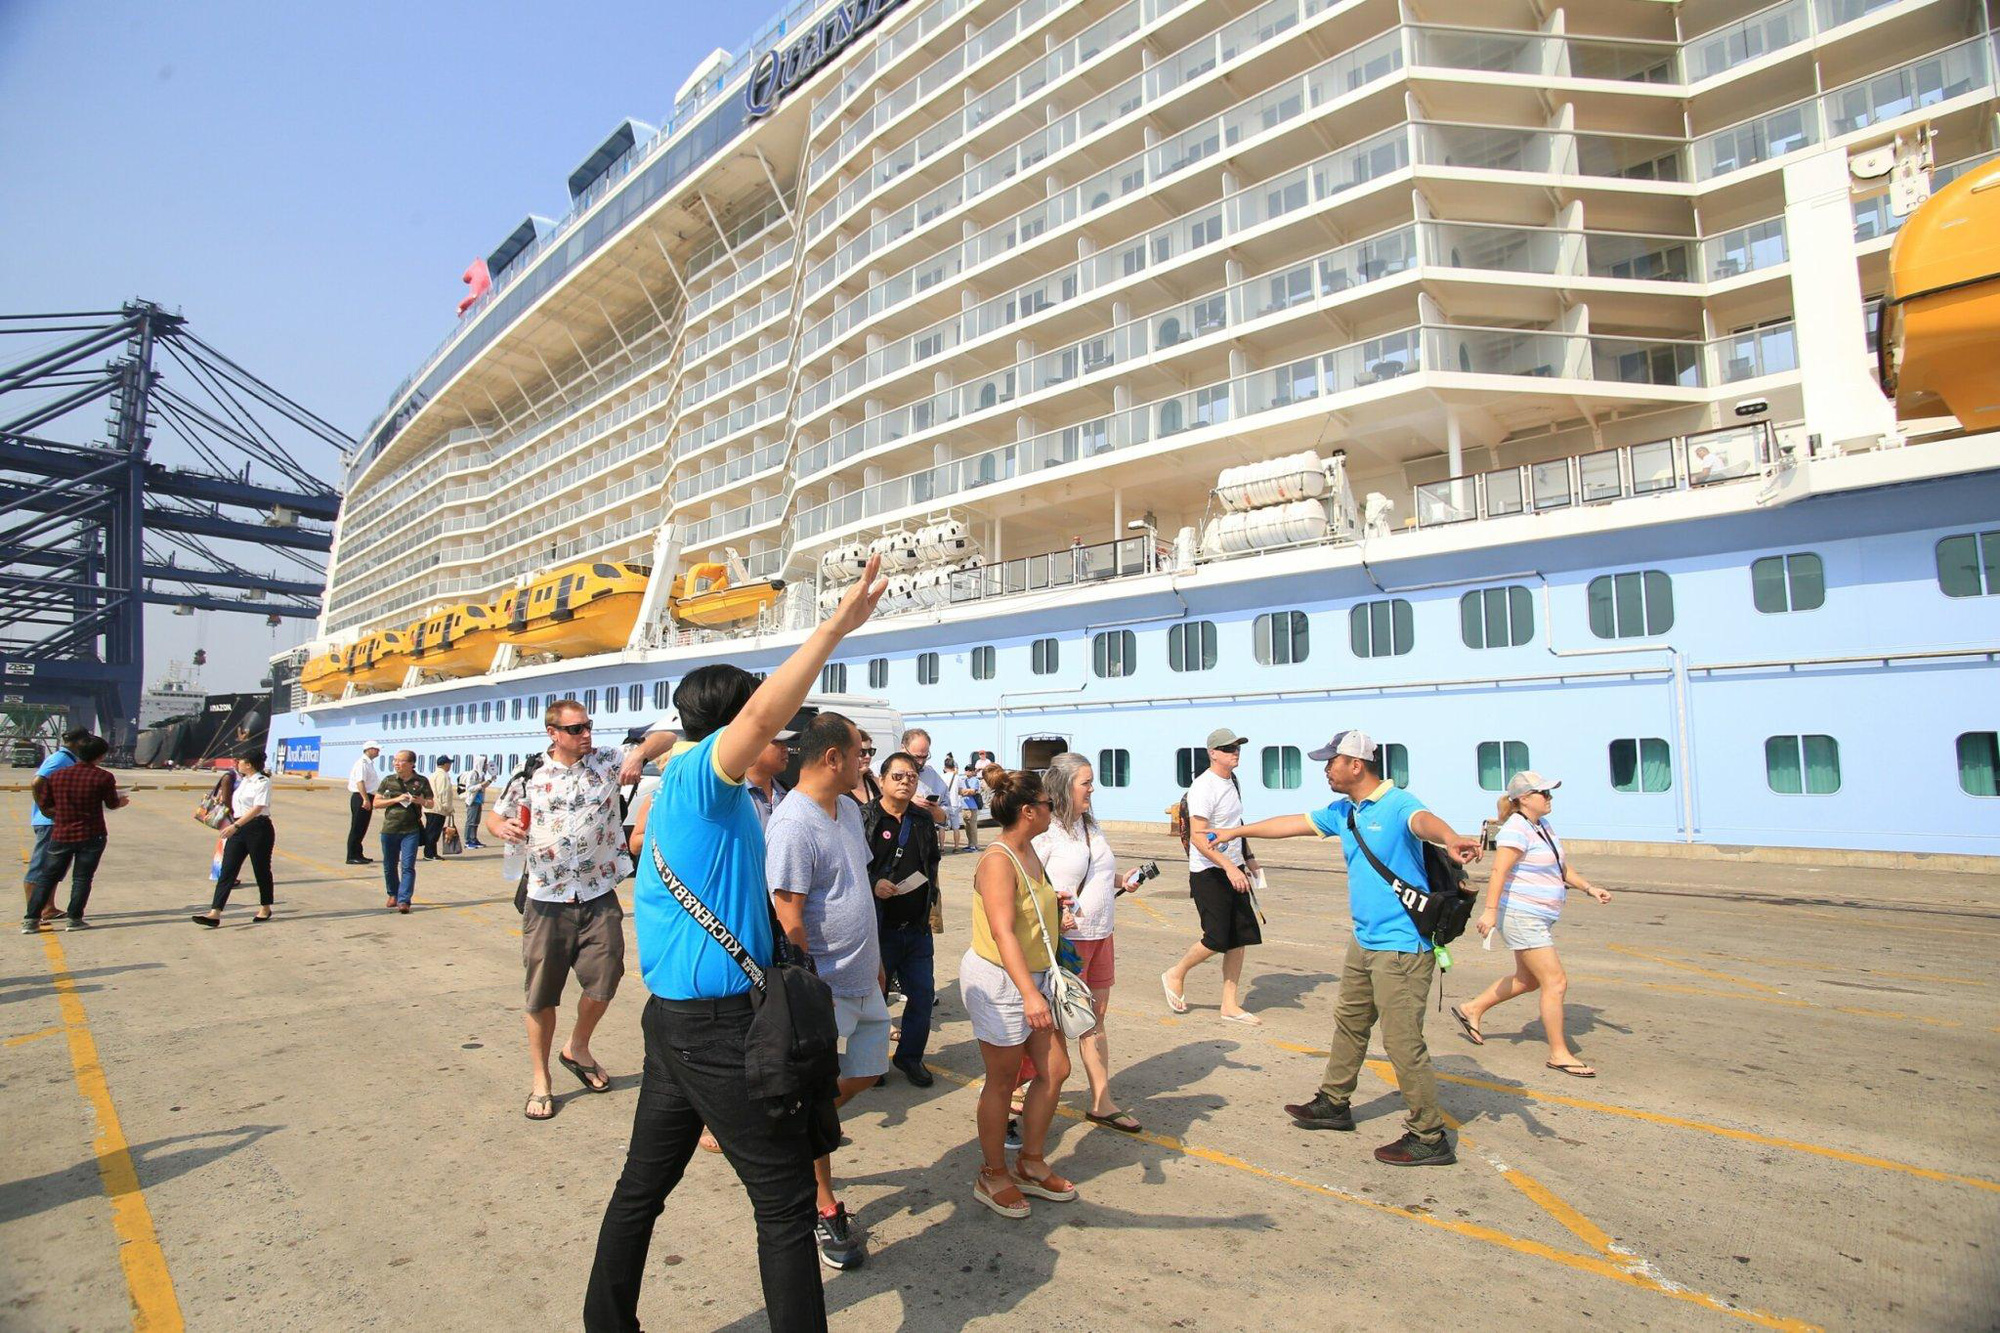 Cruise ship arrivals to Vietnam pick up in 2020